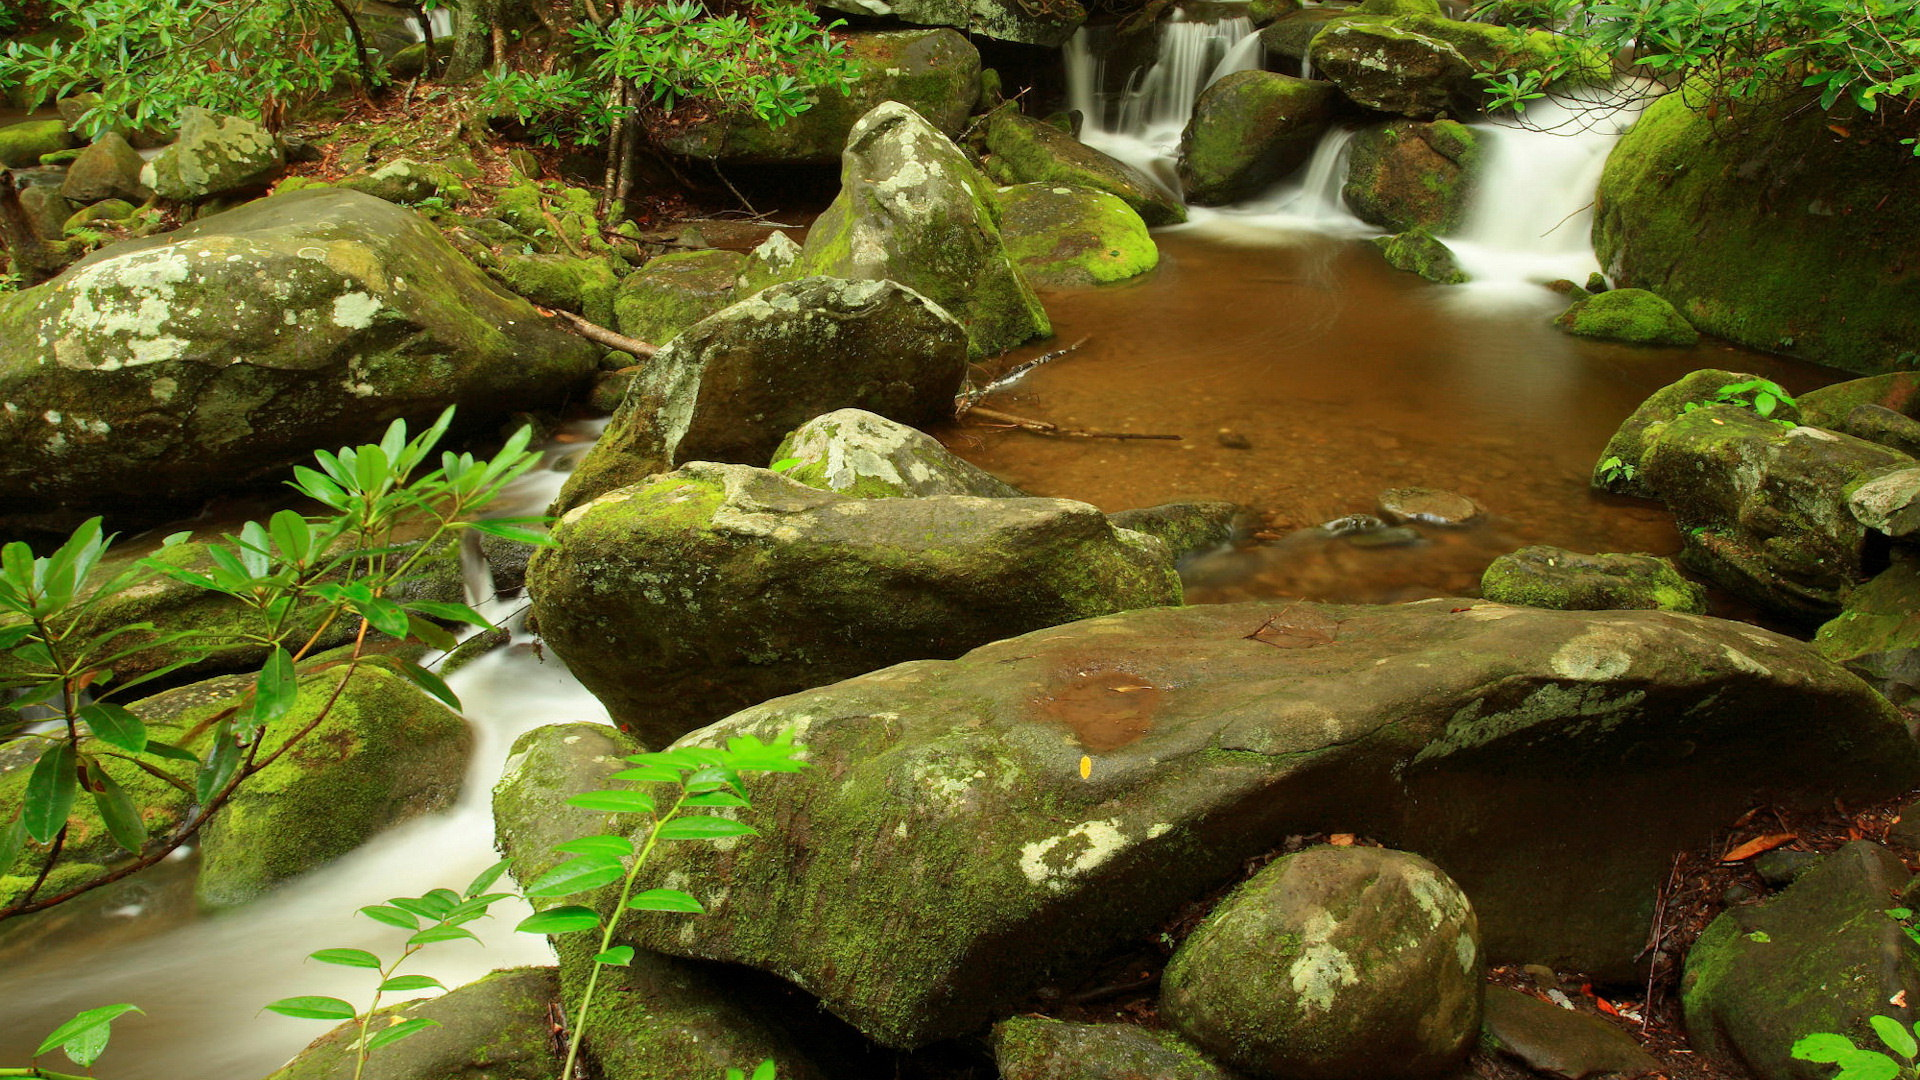 click to free download the wallpaper--Free Download Natural Scenery Picture - The Peaceful Waterfall, Stones Are Brushed Clean, Looking Good Together 1920X1080 free wallpaper download